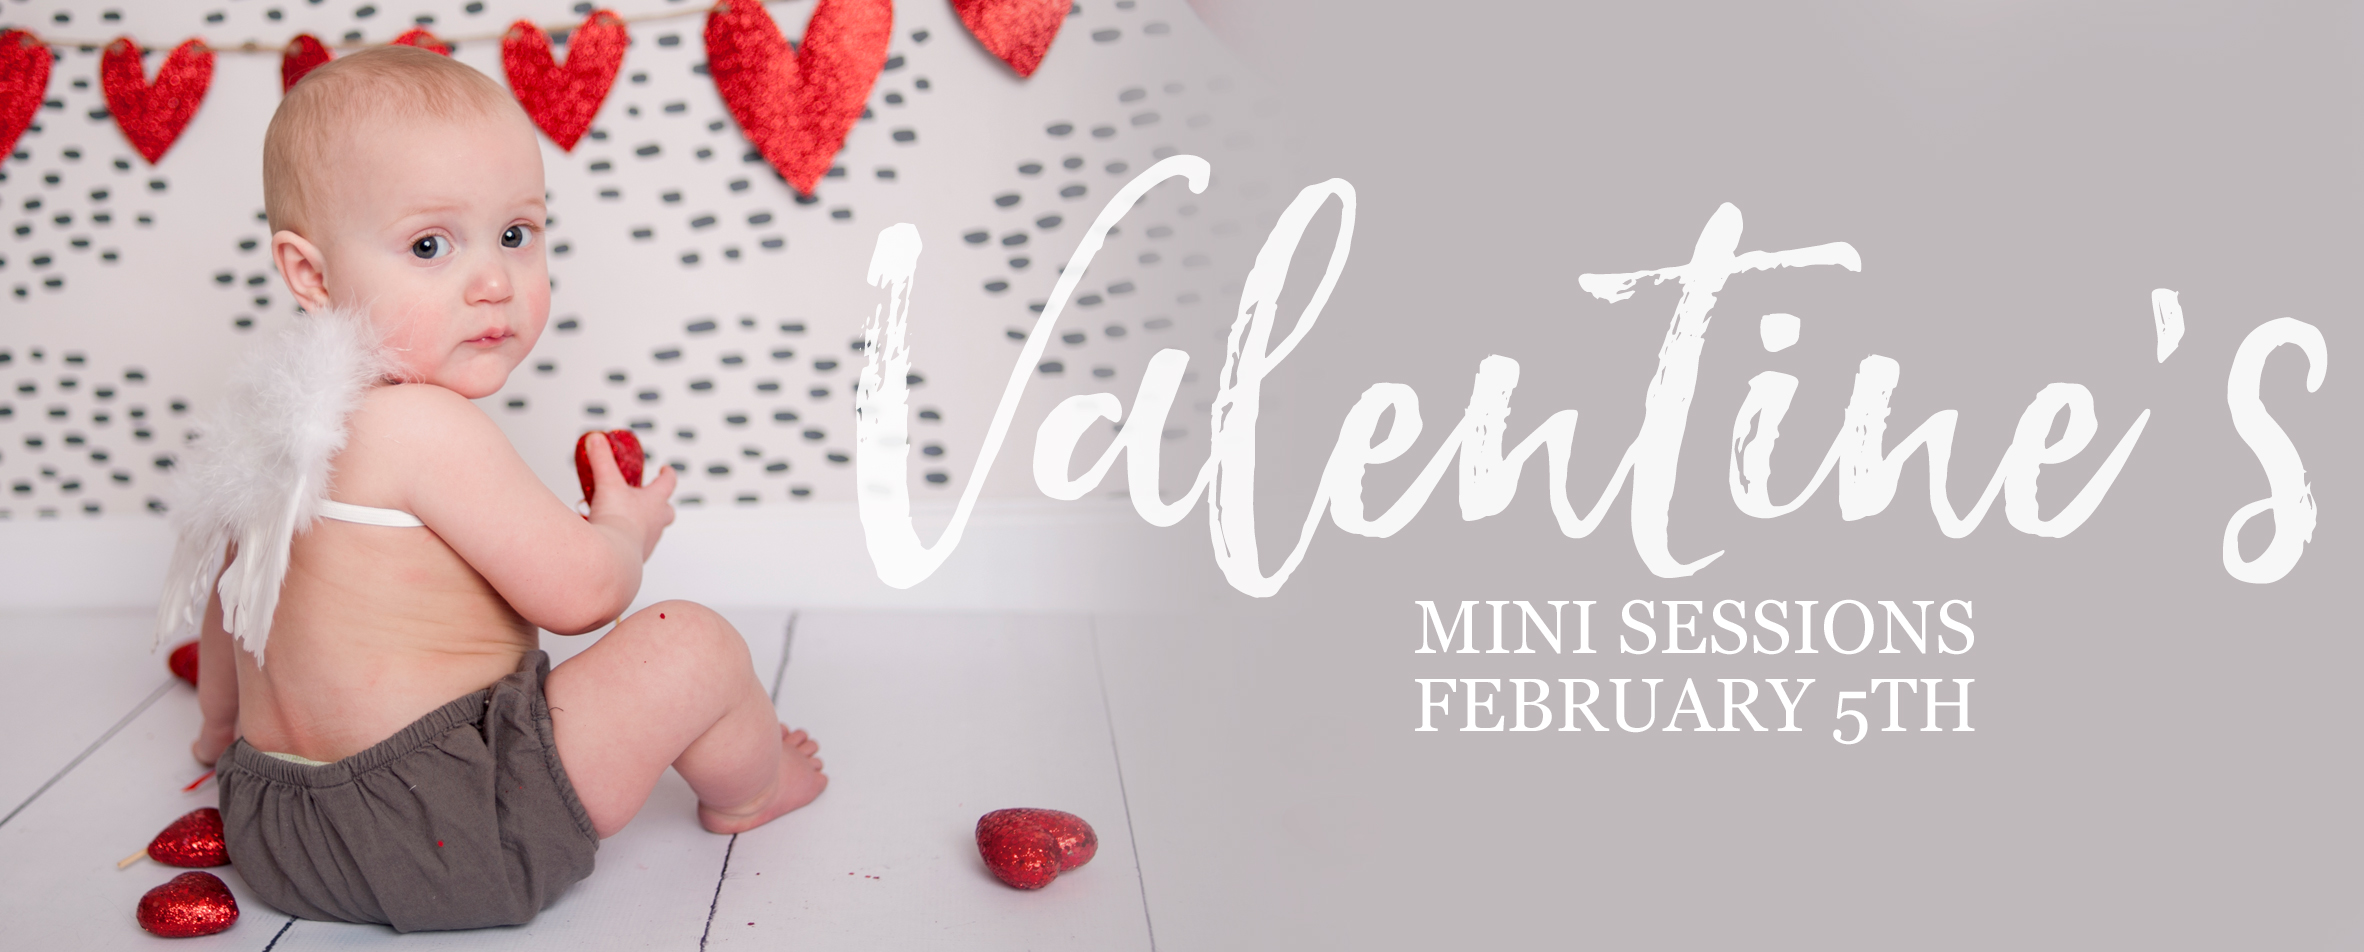 valentines day mini session photos dorchester nebraska photographer kelsey homolka nerud